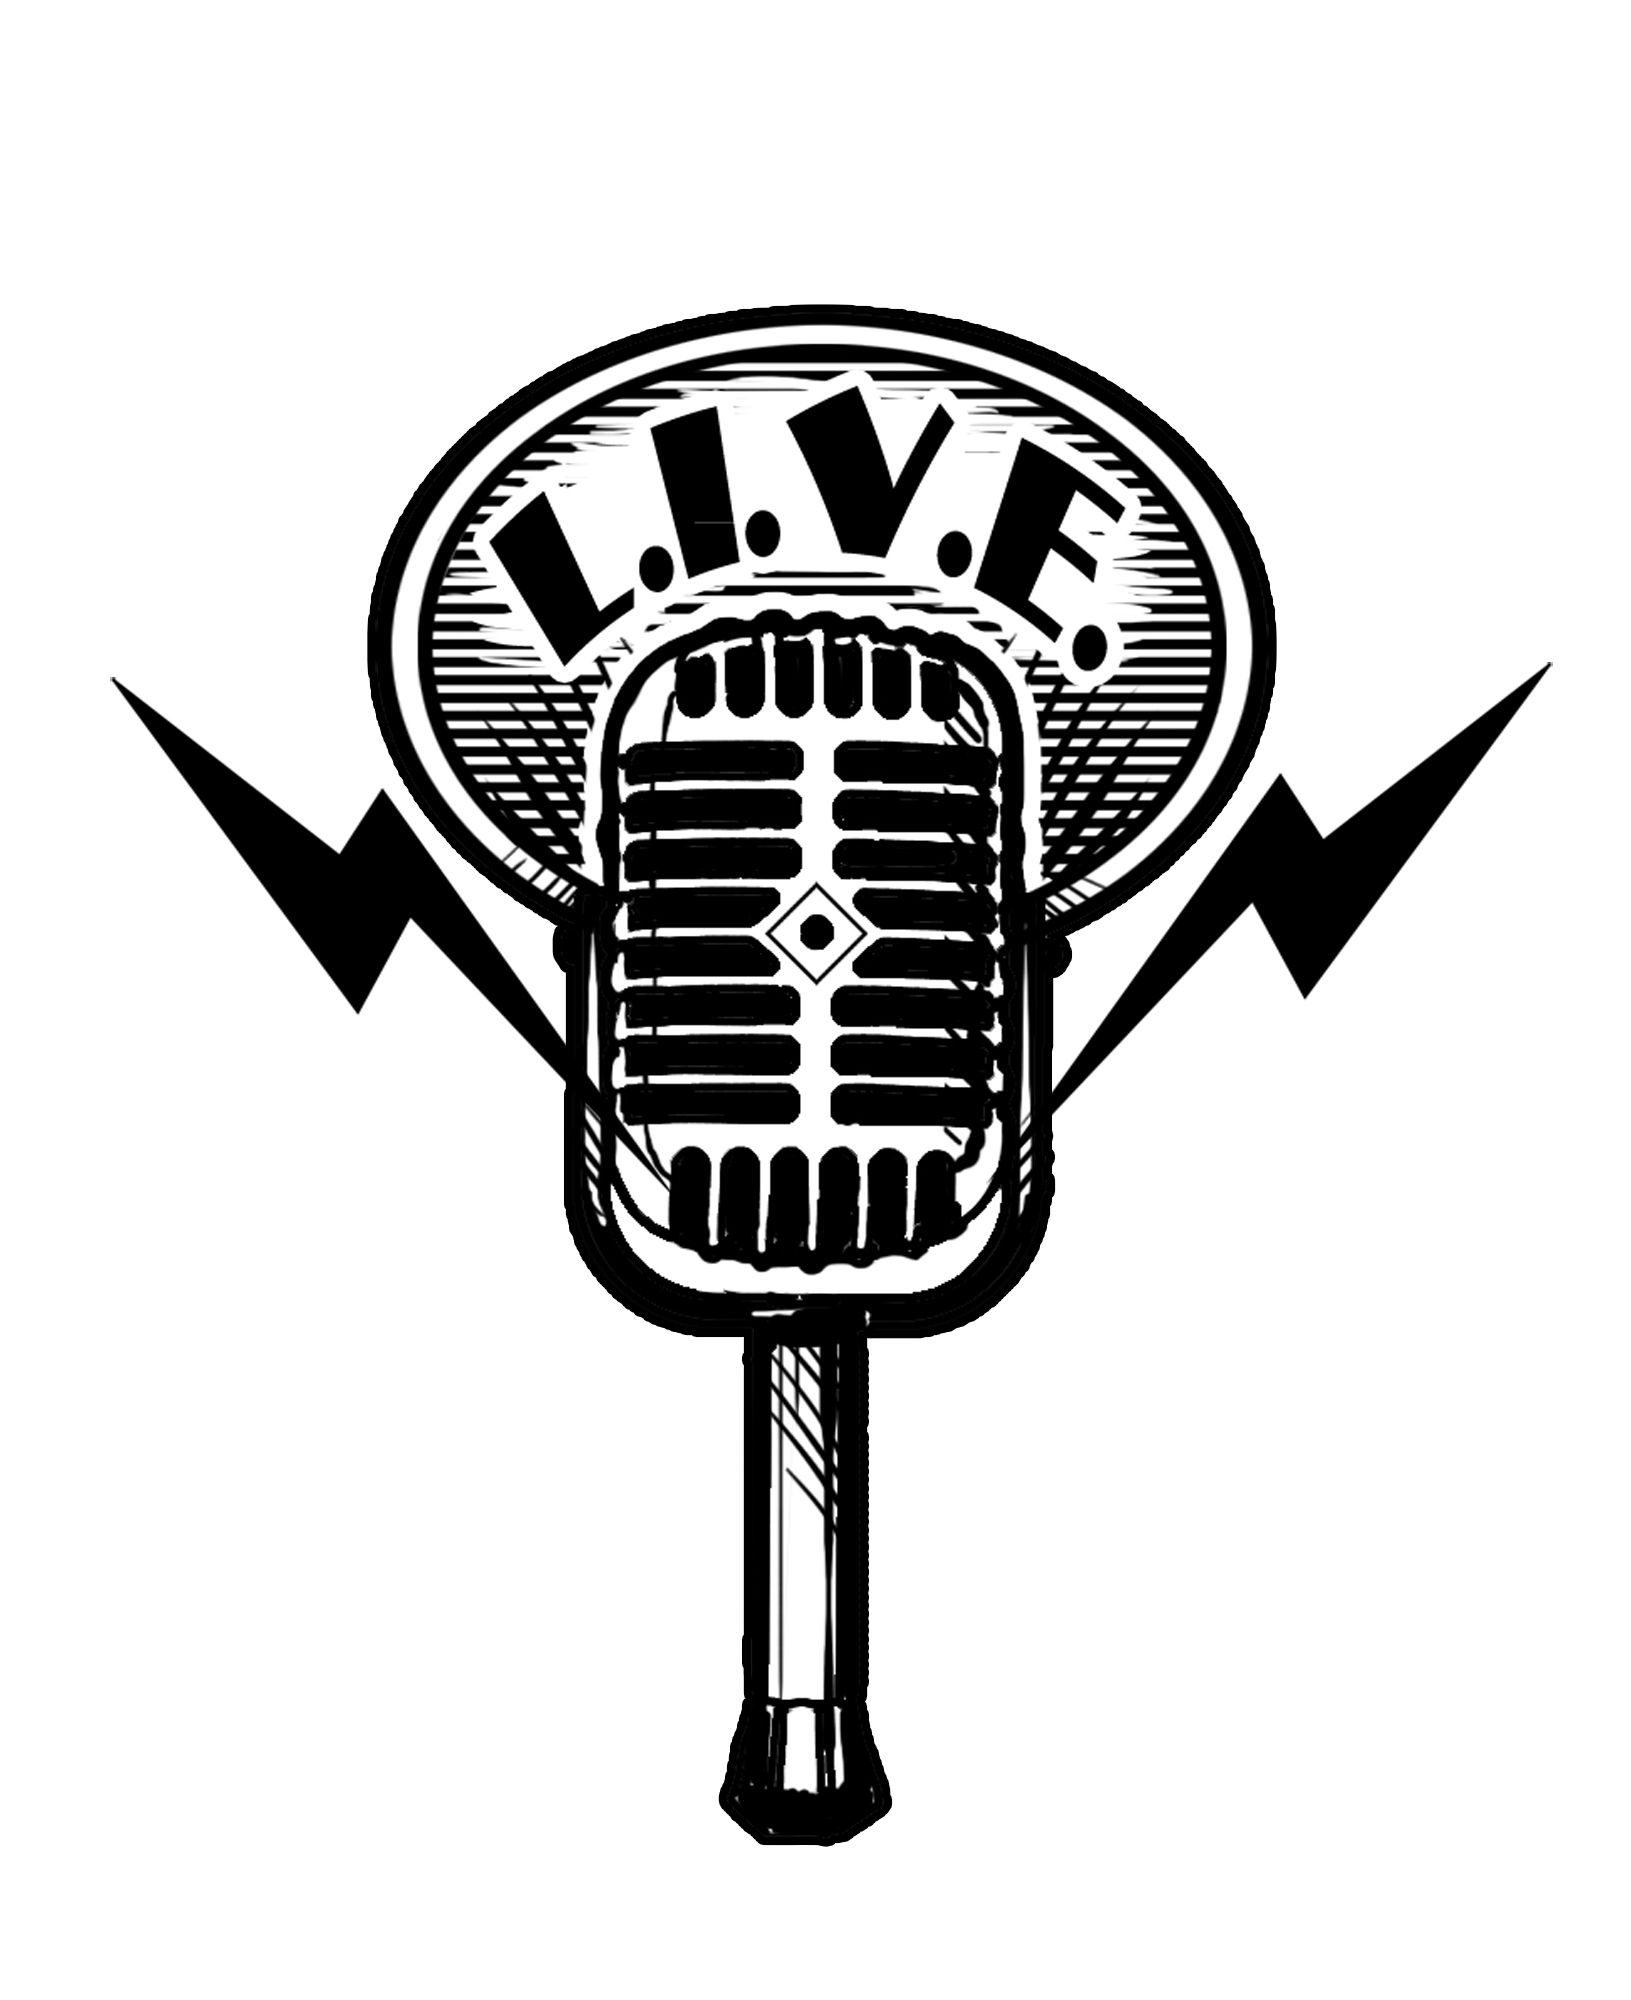 Microphone clipart talk show. Radio mic logo png